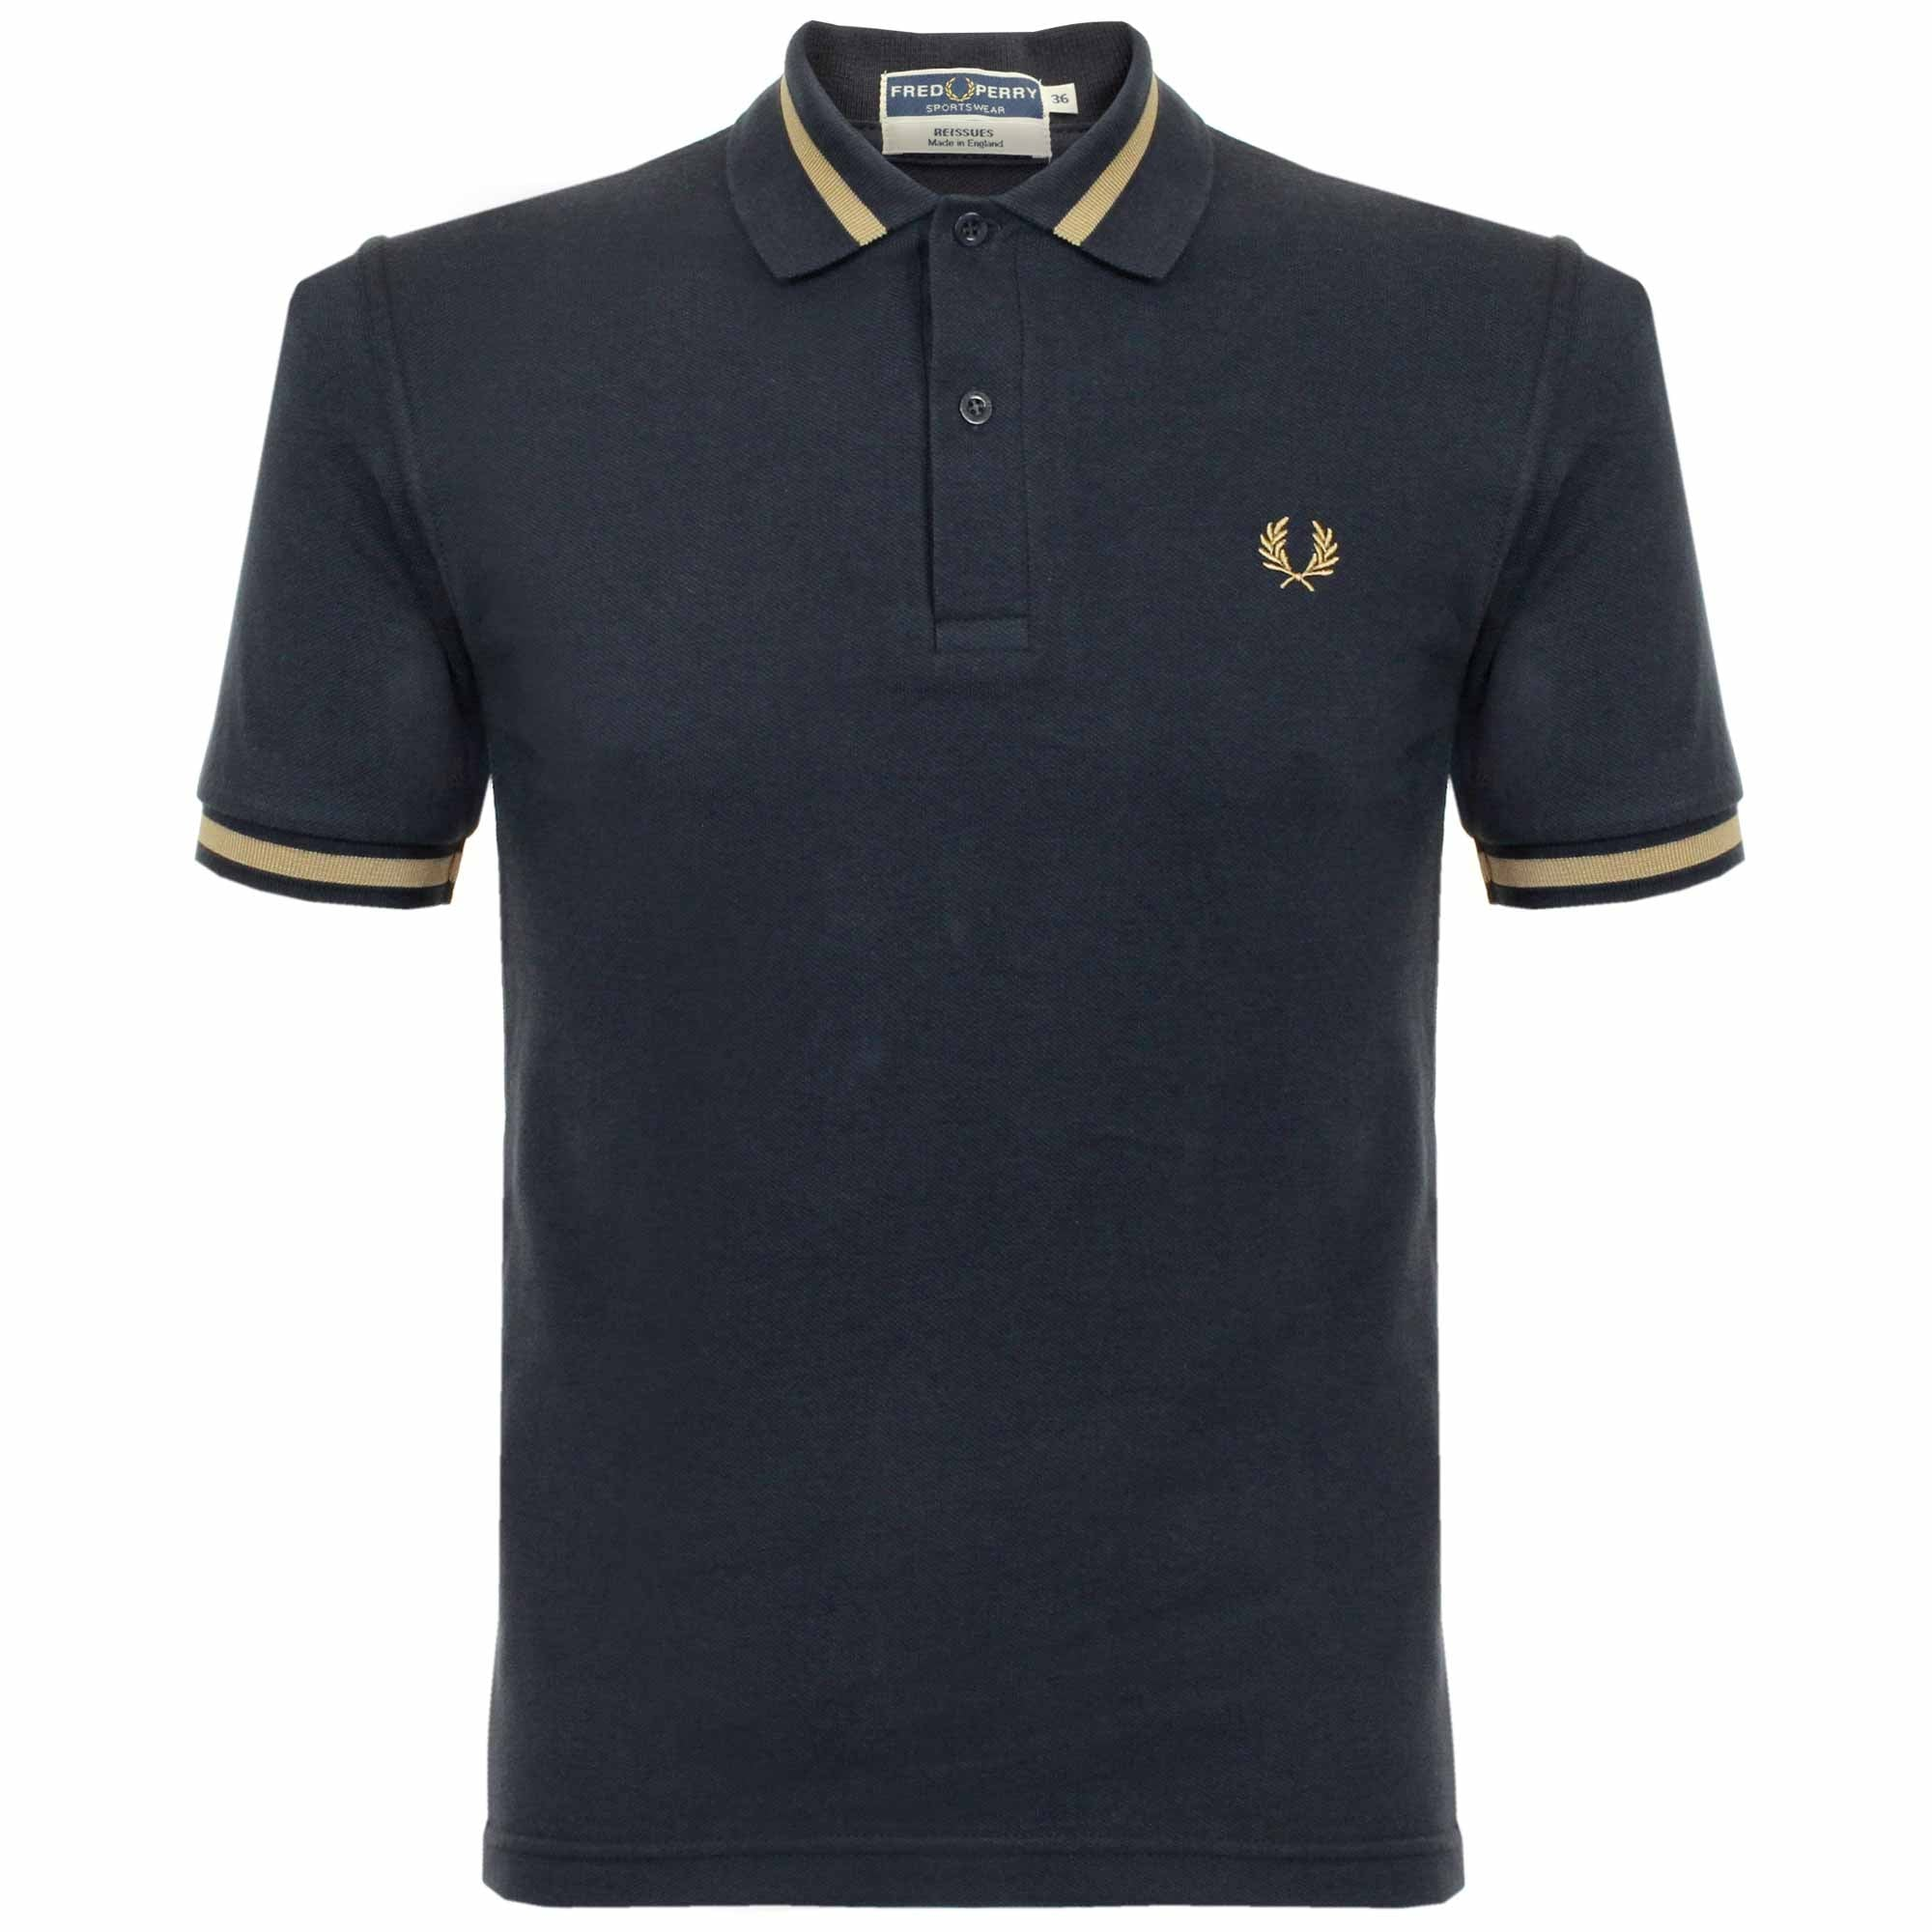 Fred Perry Single Tipped Navy Pique Polo Shirt M2 248